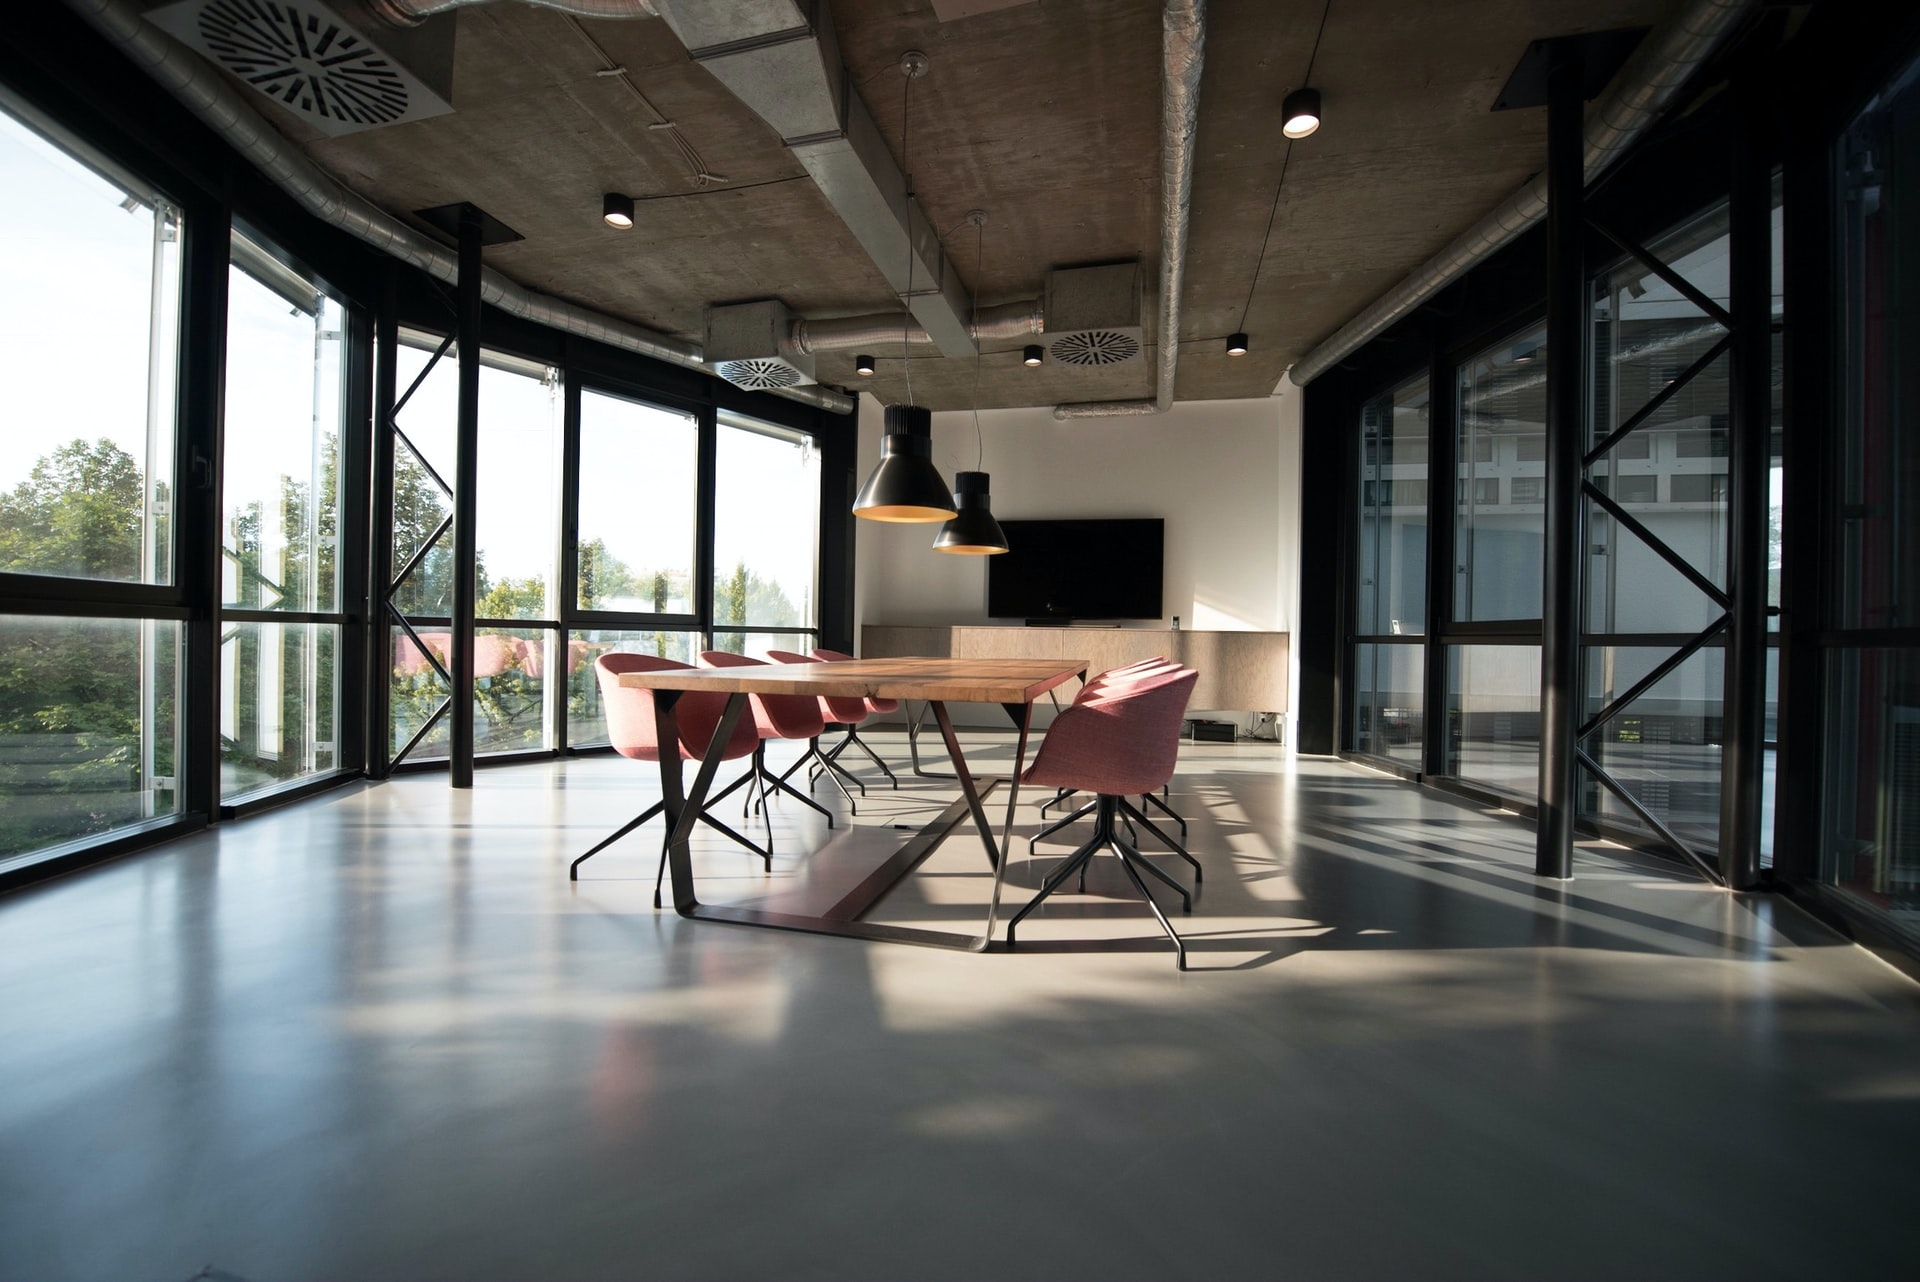 Conference table in a large modern office